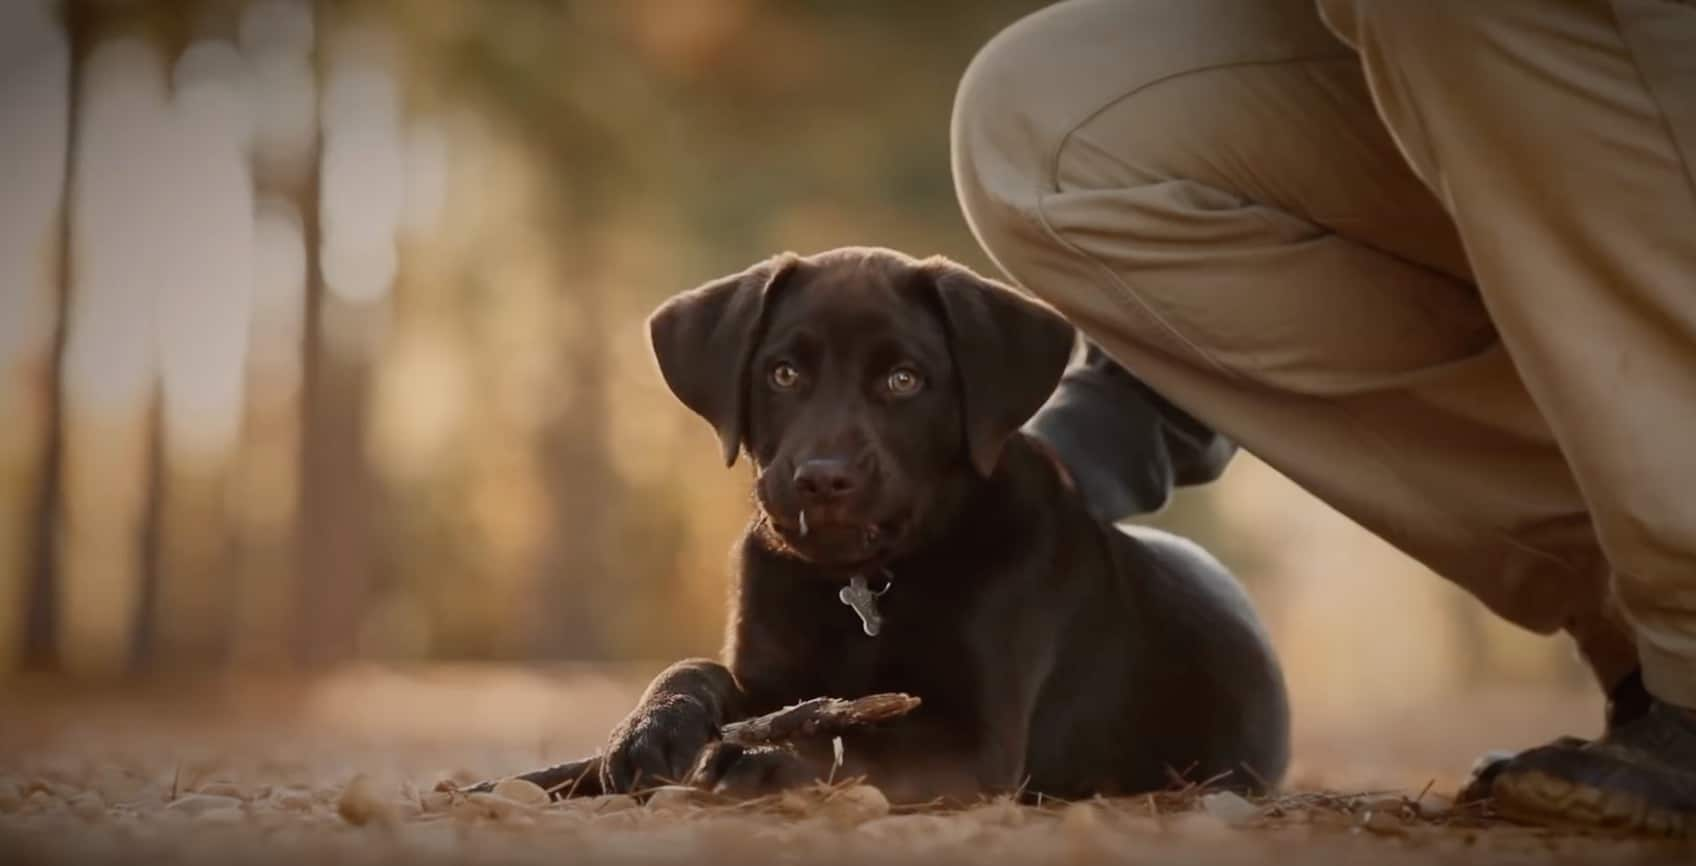 The Circle is a beautifully emotional short film about the bond between a man and his dog.